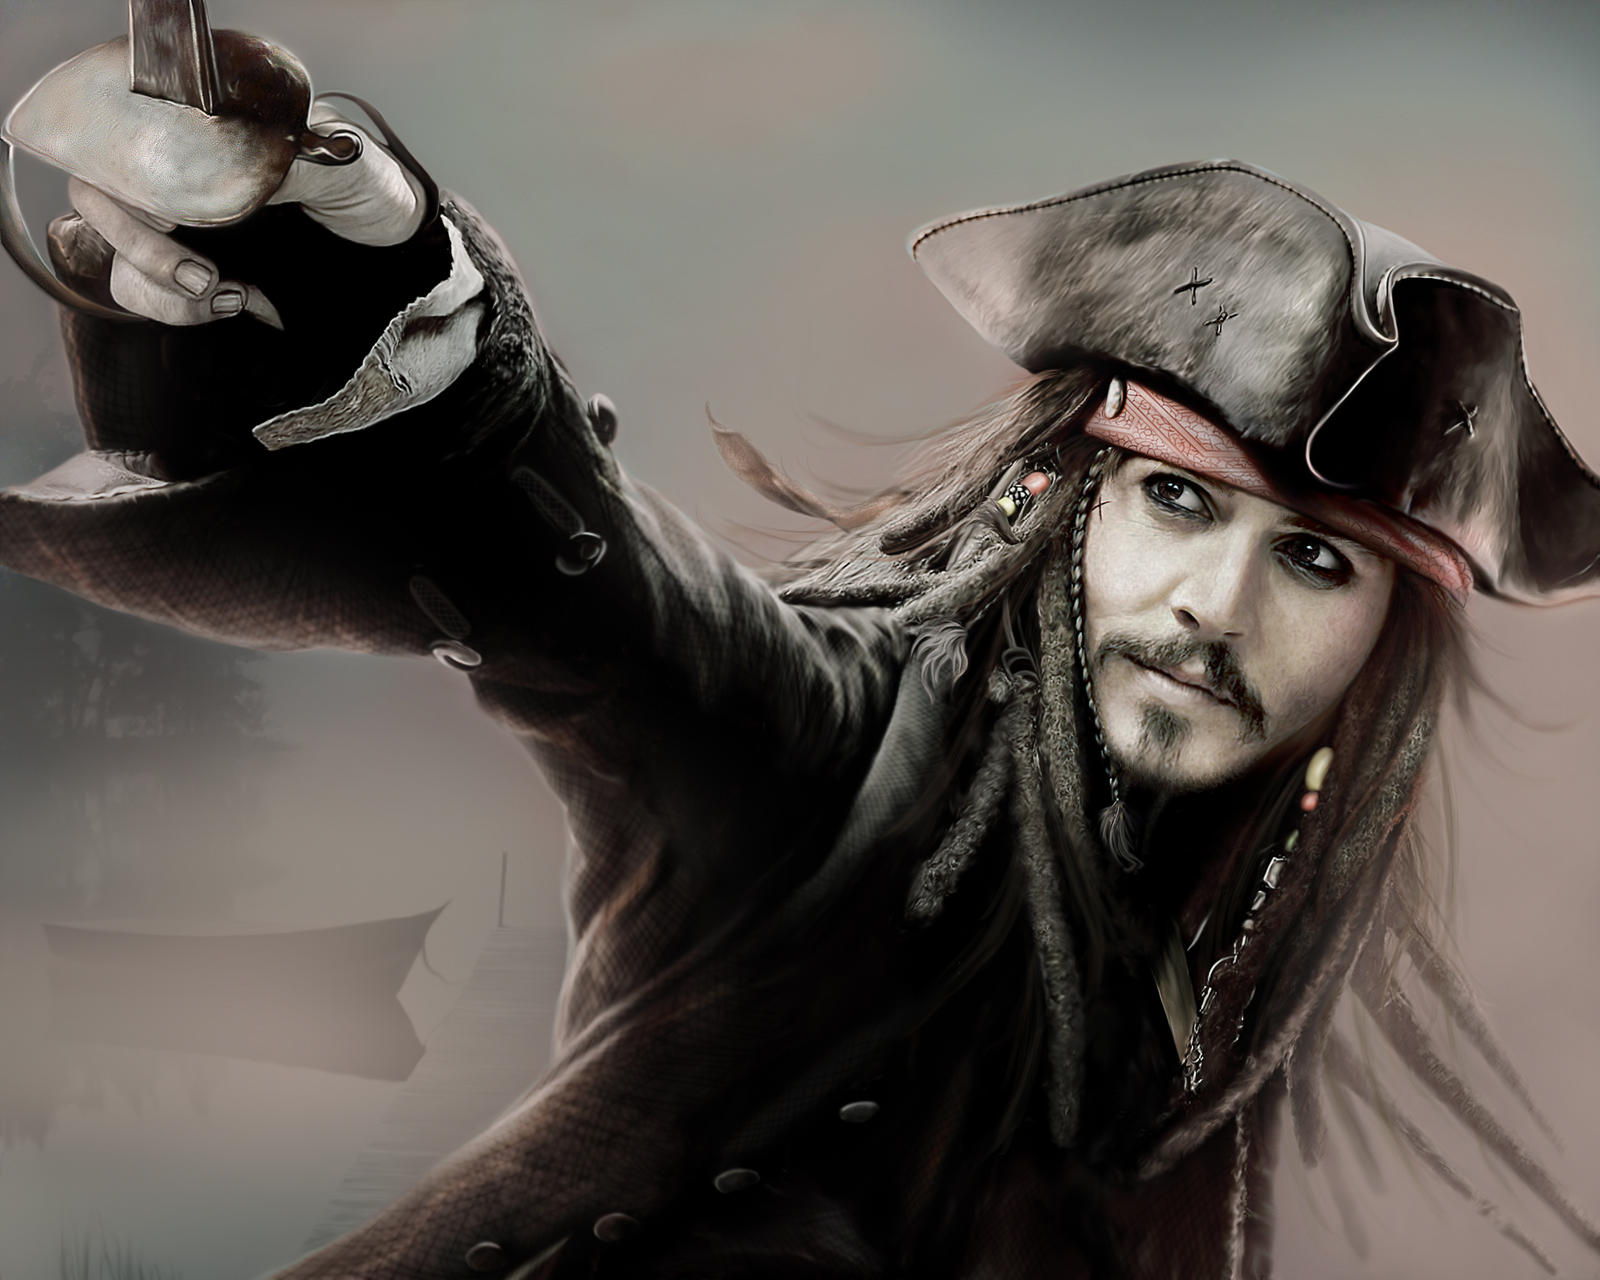 Captain jack sparrow by ecilarose on deviantart captain jack sparrow by ecilarose captain jack sparrow by ecilarose altavistaventures Image collections